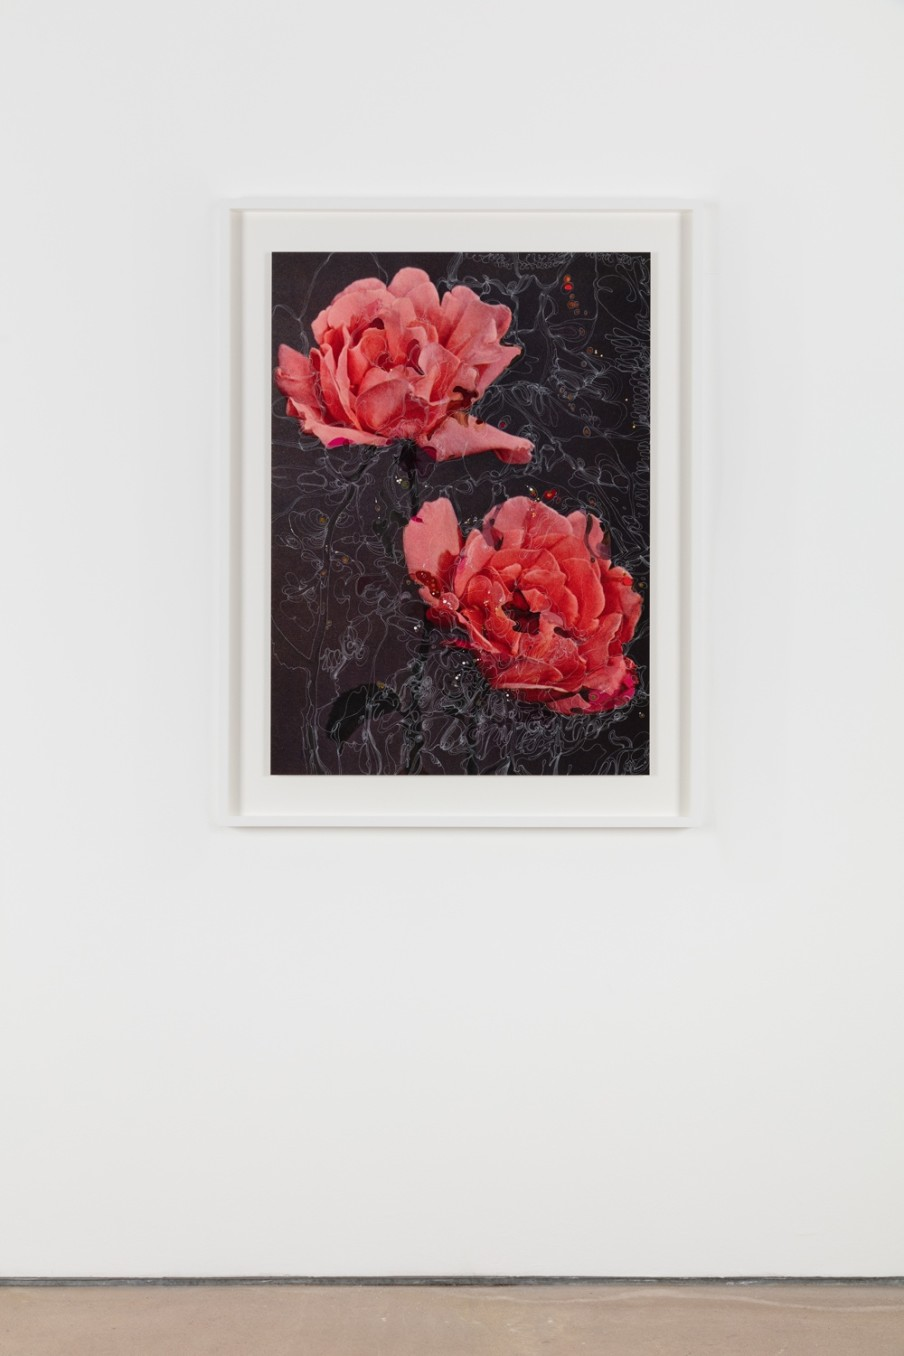 Sebastiaan Bremer, Rose Juliette Fernanda van Beuningen, 2018, Archival inkjet pigment print on resin coated paper with hand additions in acrylic, photo retouch dye, and pigment pen, 101.6 x 73.3 cm, 40 x 28 7/8 in, Framed: 121 x 92.9 x 5 cm, 47 5/8 x 36